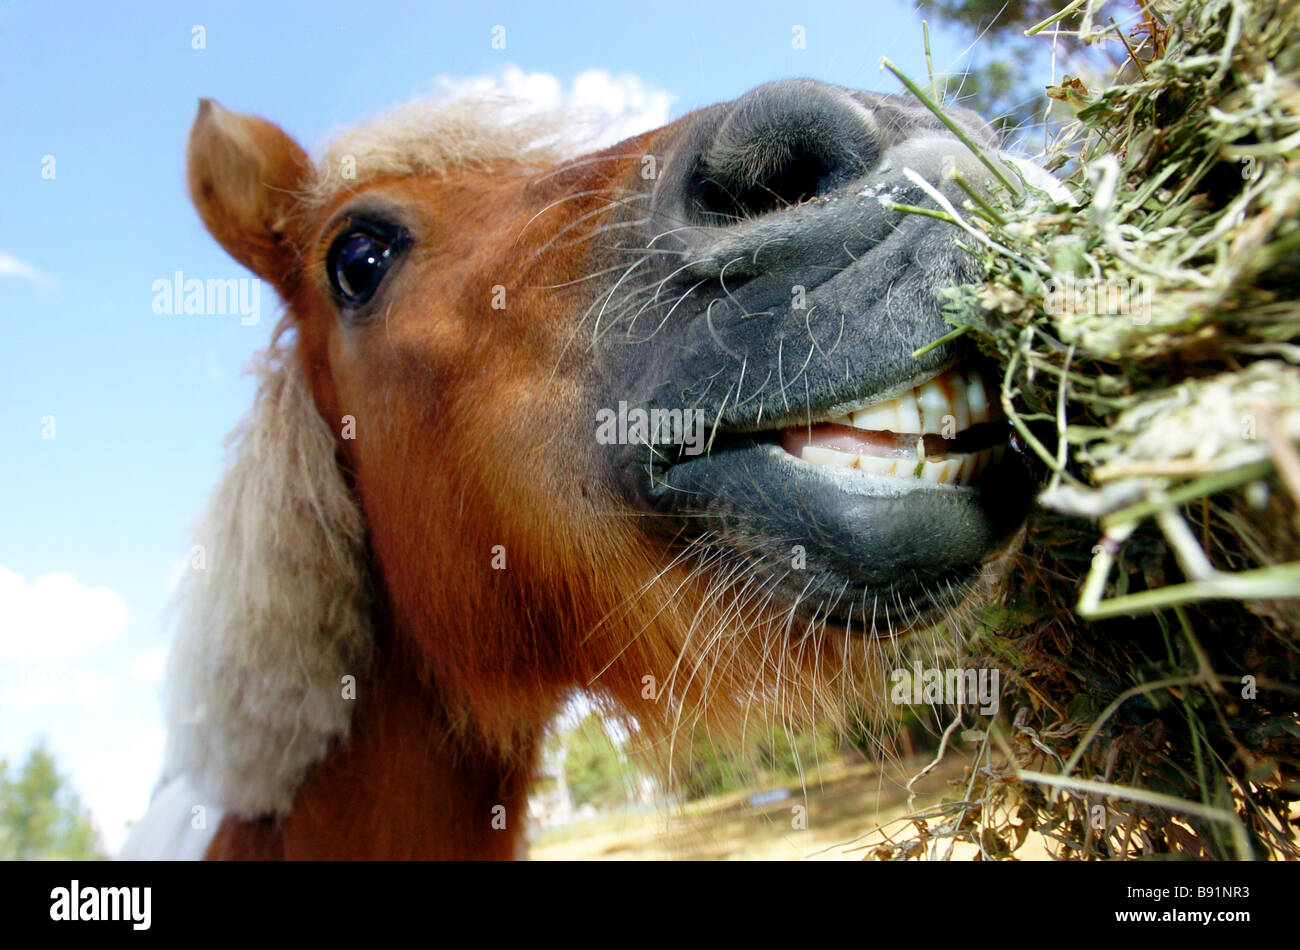 Horse eating hay - Stock Image